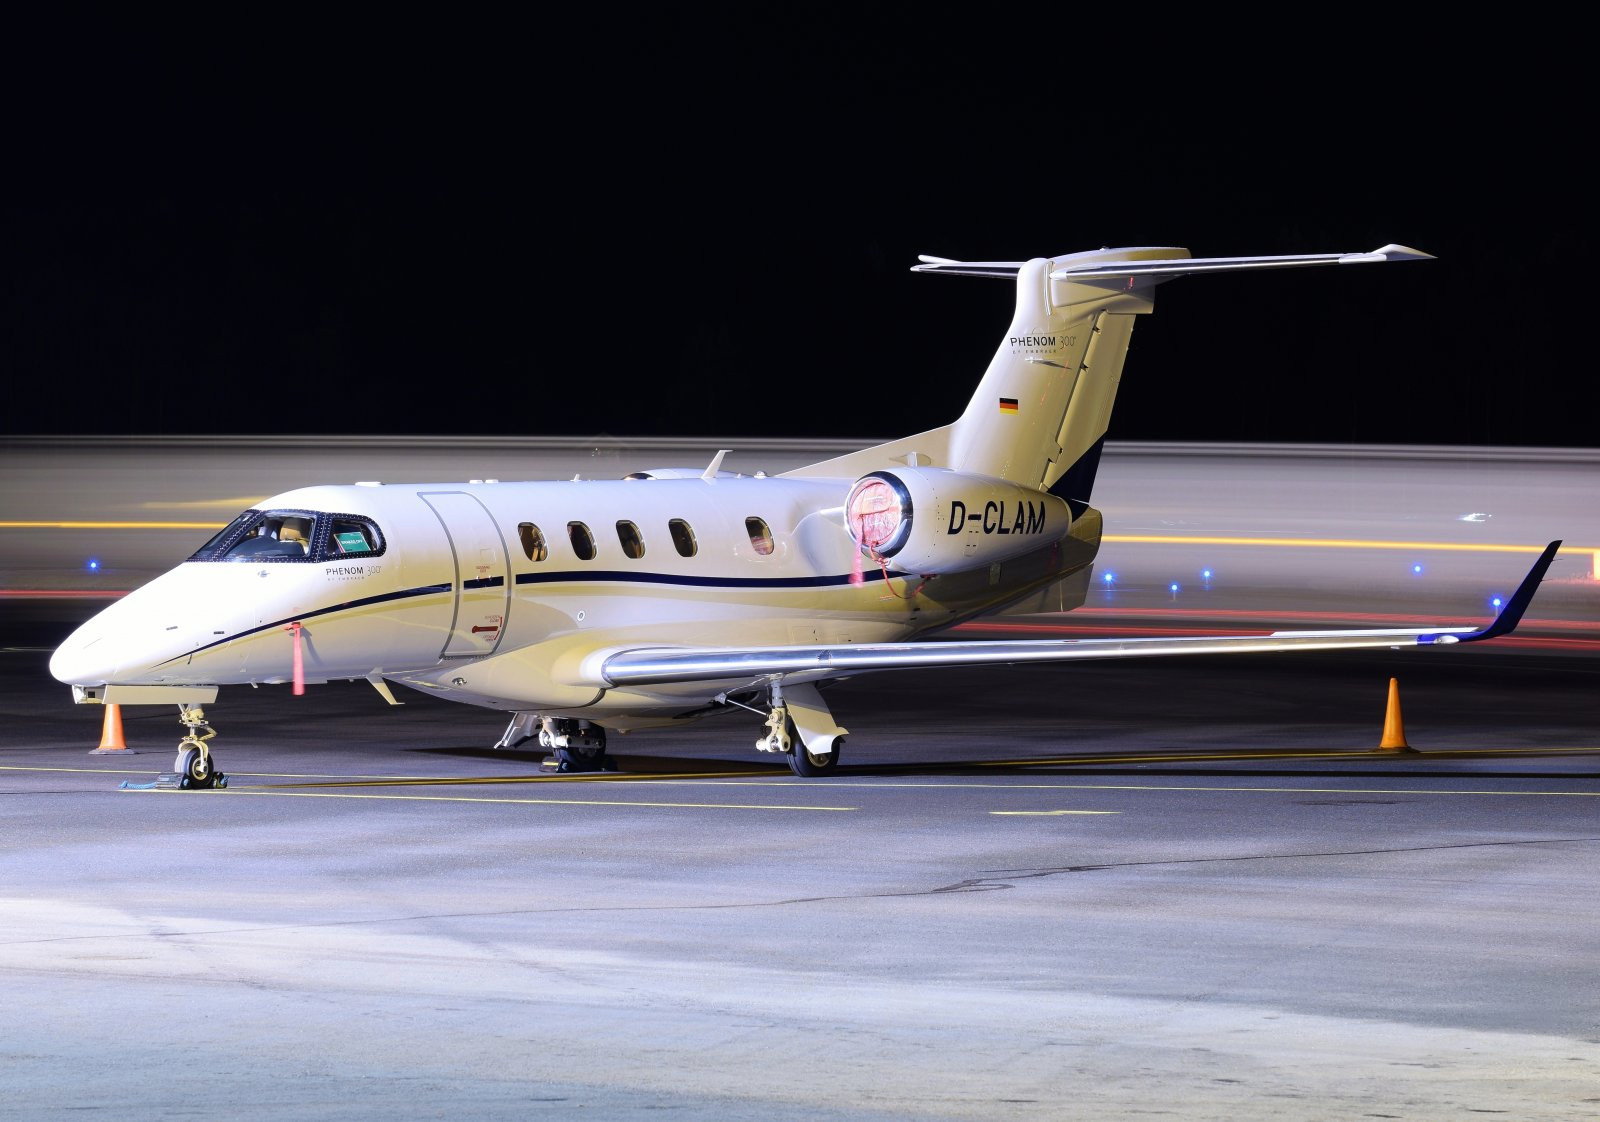 D-CLAM - Embraer 505 Phenom 300 - 6.11.2019